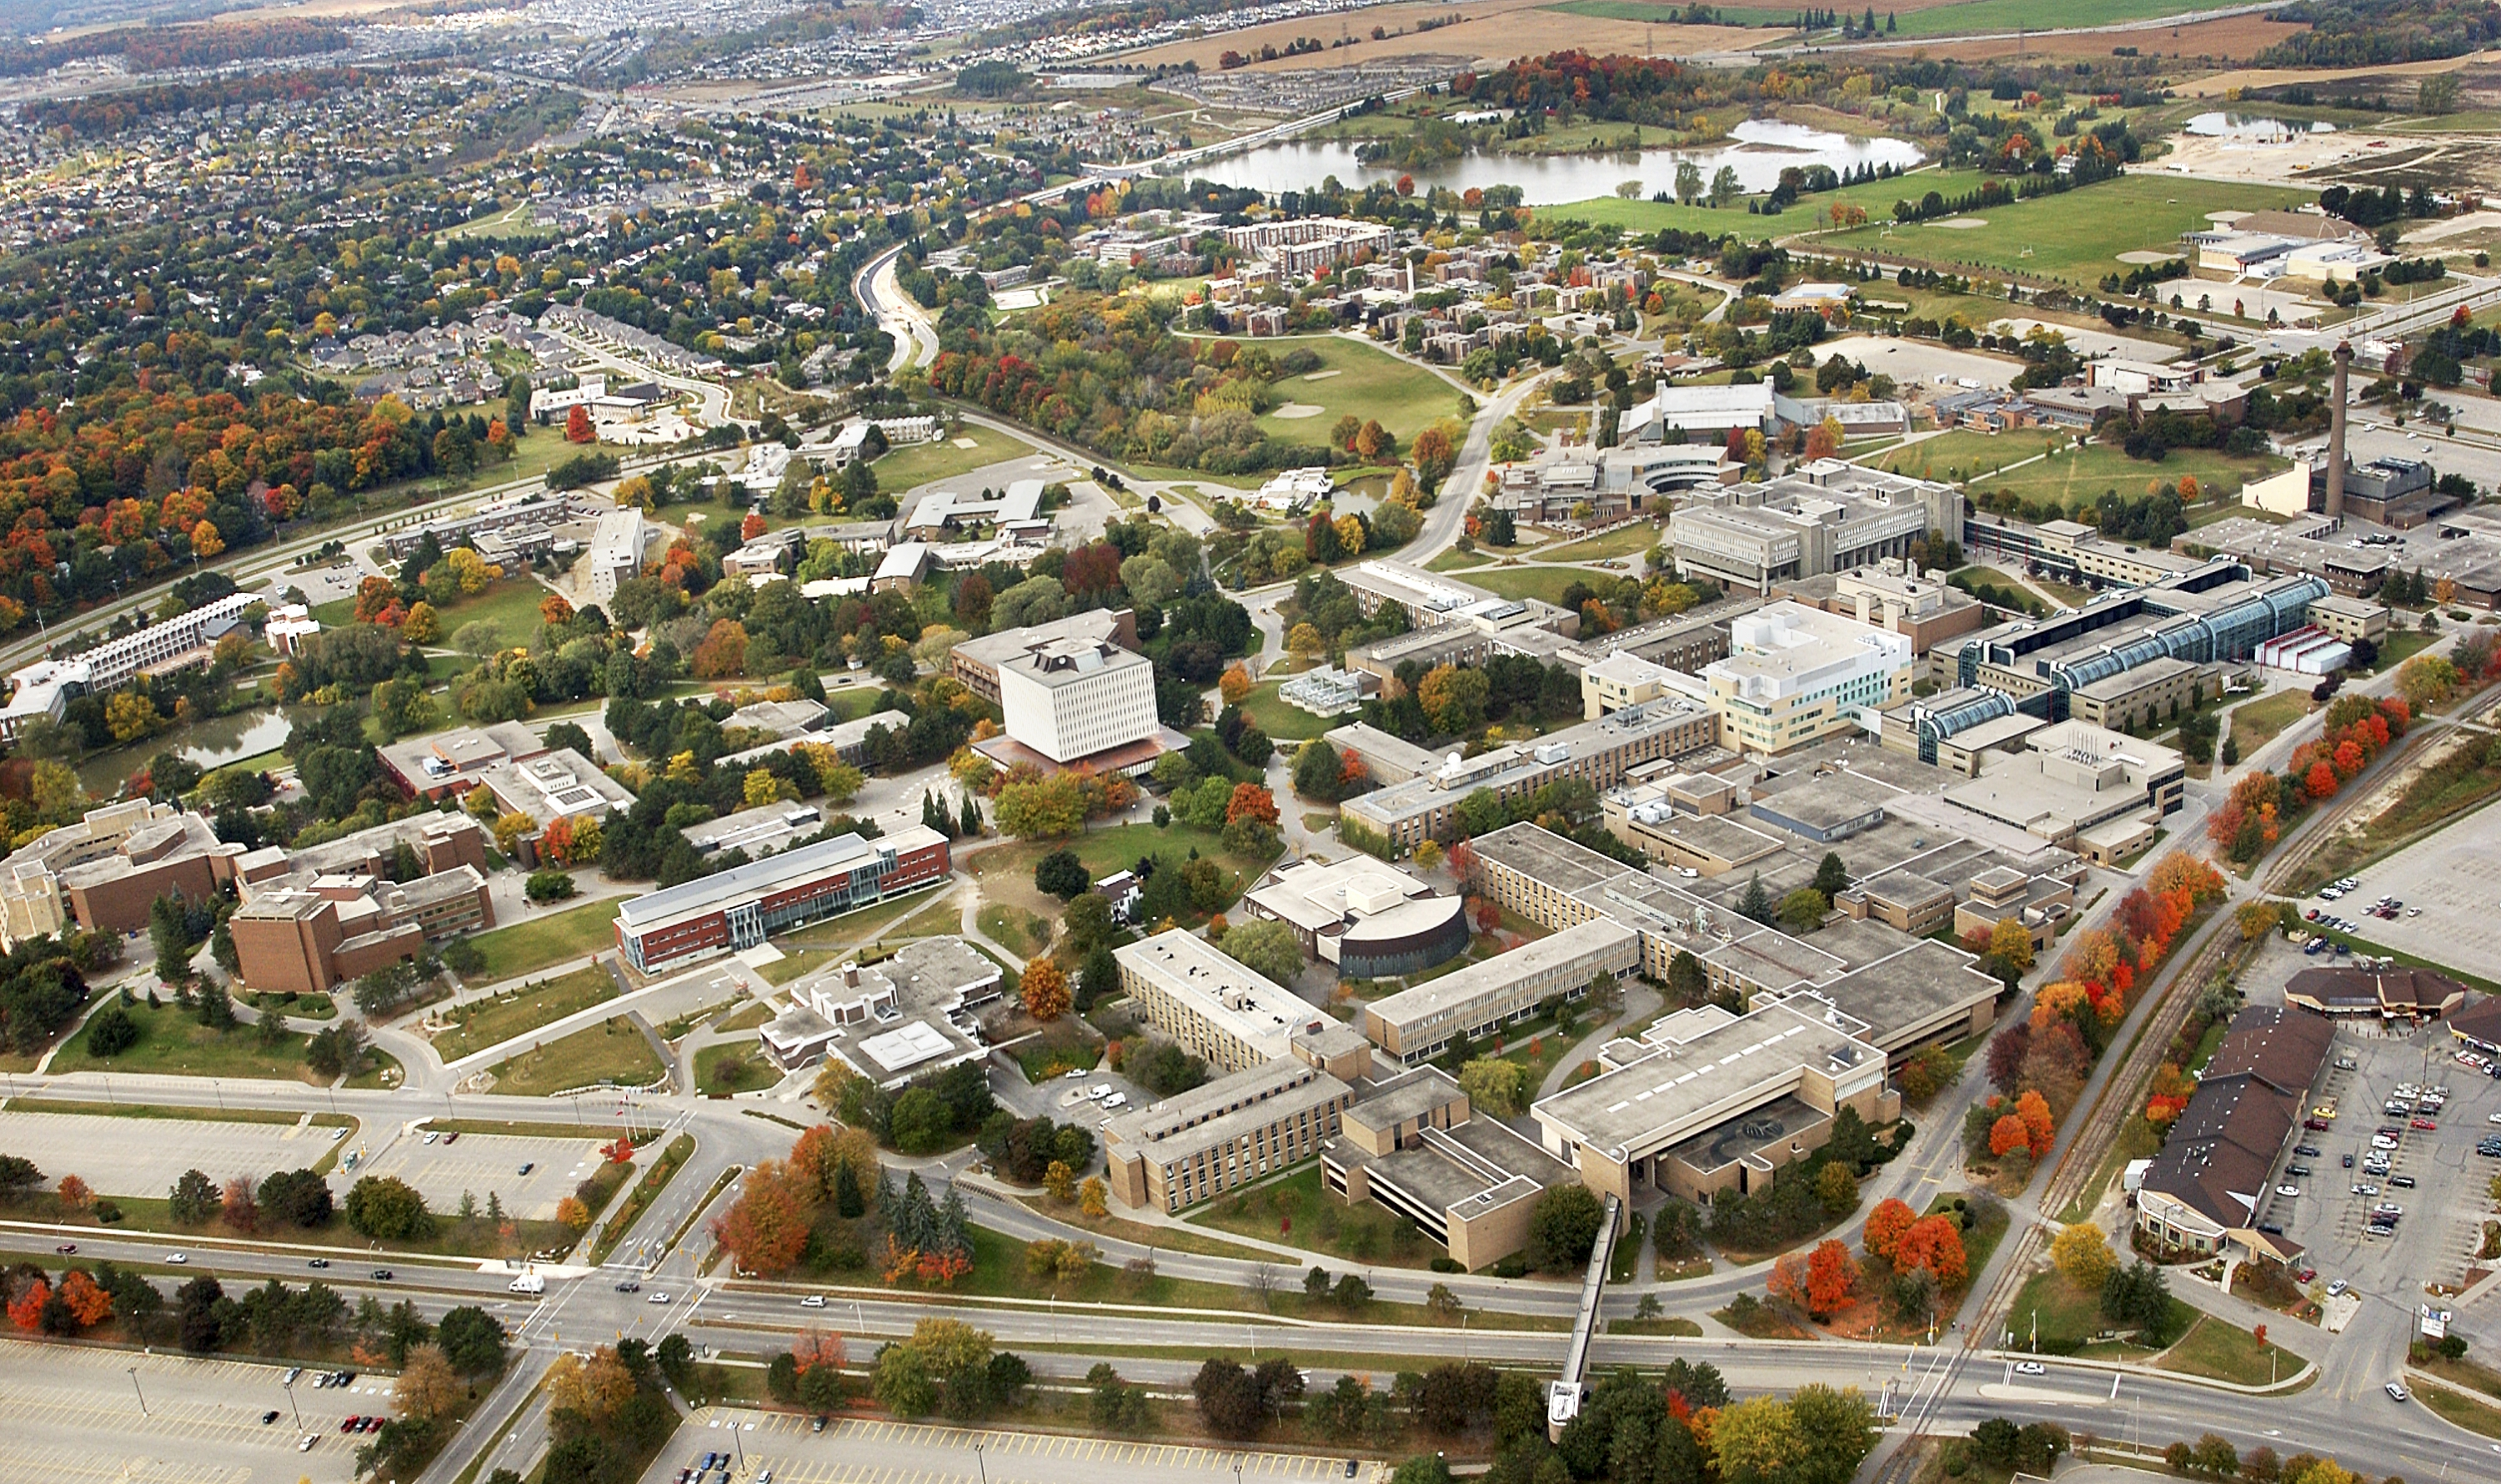 Campus aerial photograph in fall